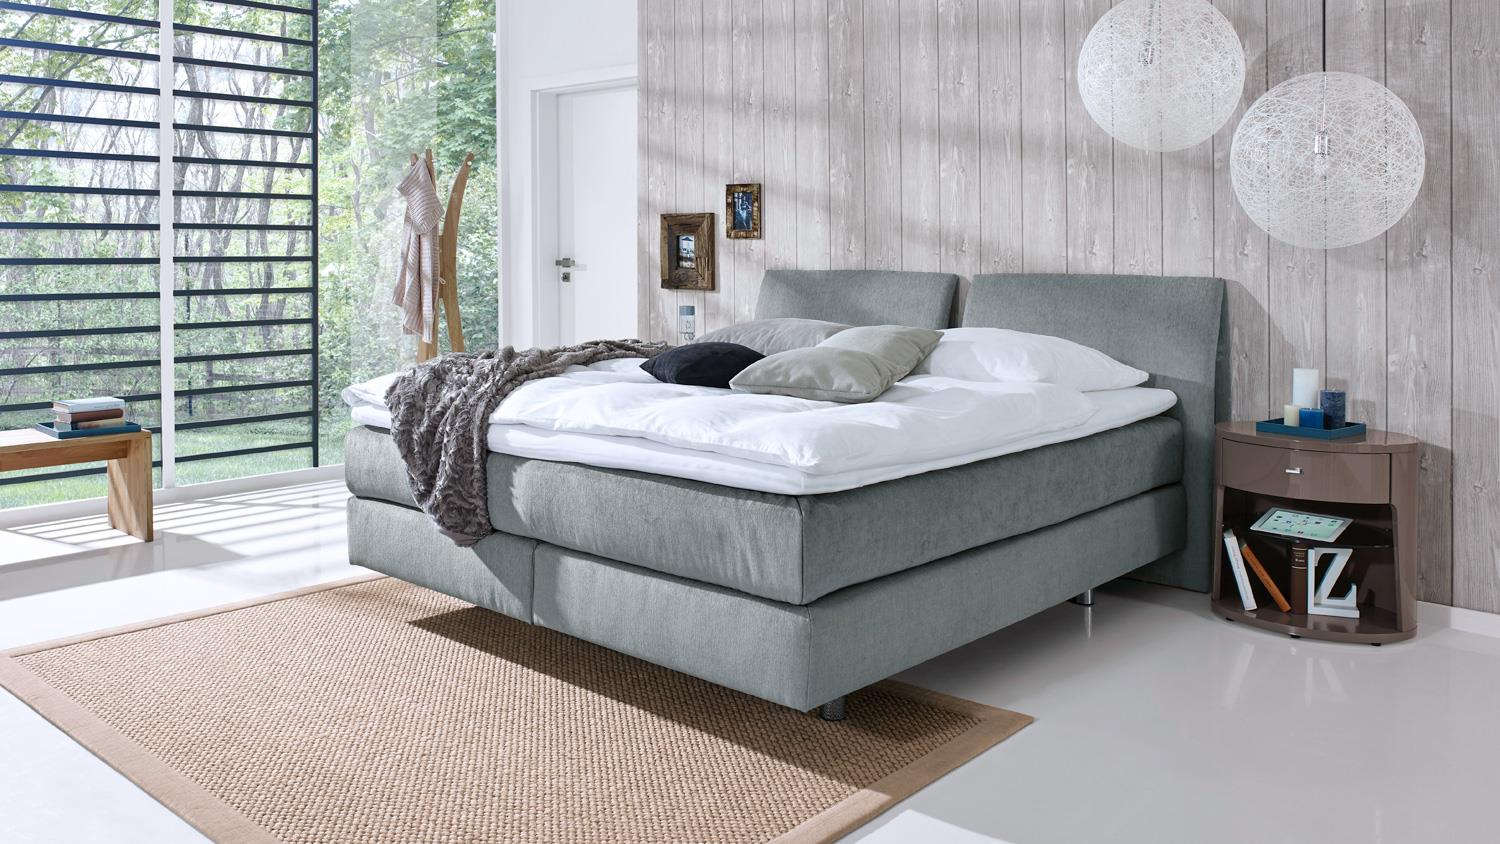 boxspringbett couture in stoff grau mit kopfteil topper 180x200 femira. Black Bedroom Furniture Sets. Home Design Ideas